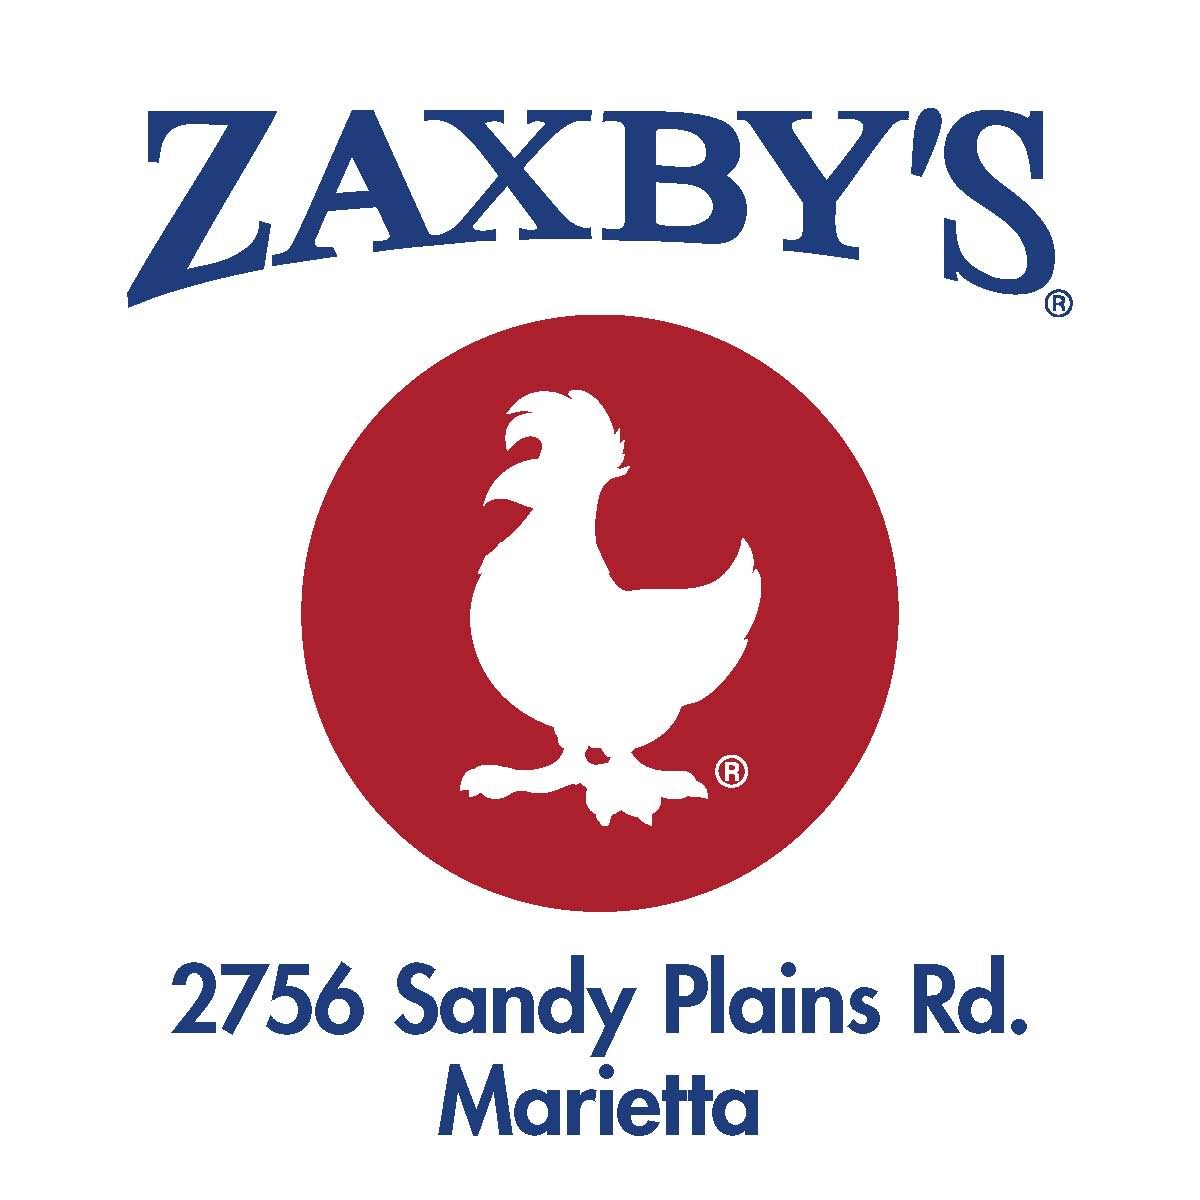 Zaxbys Sandy Plains